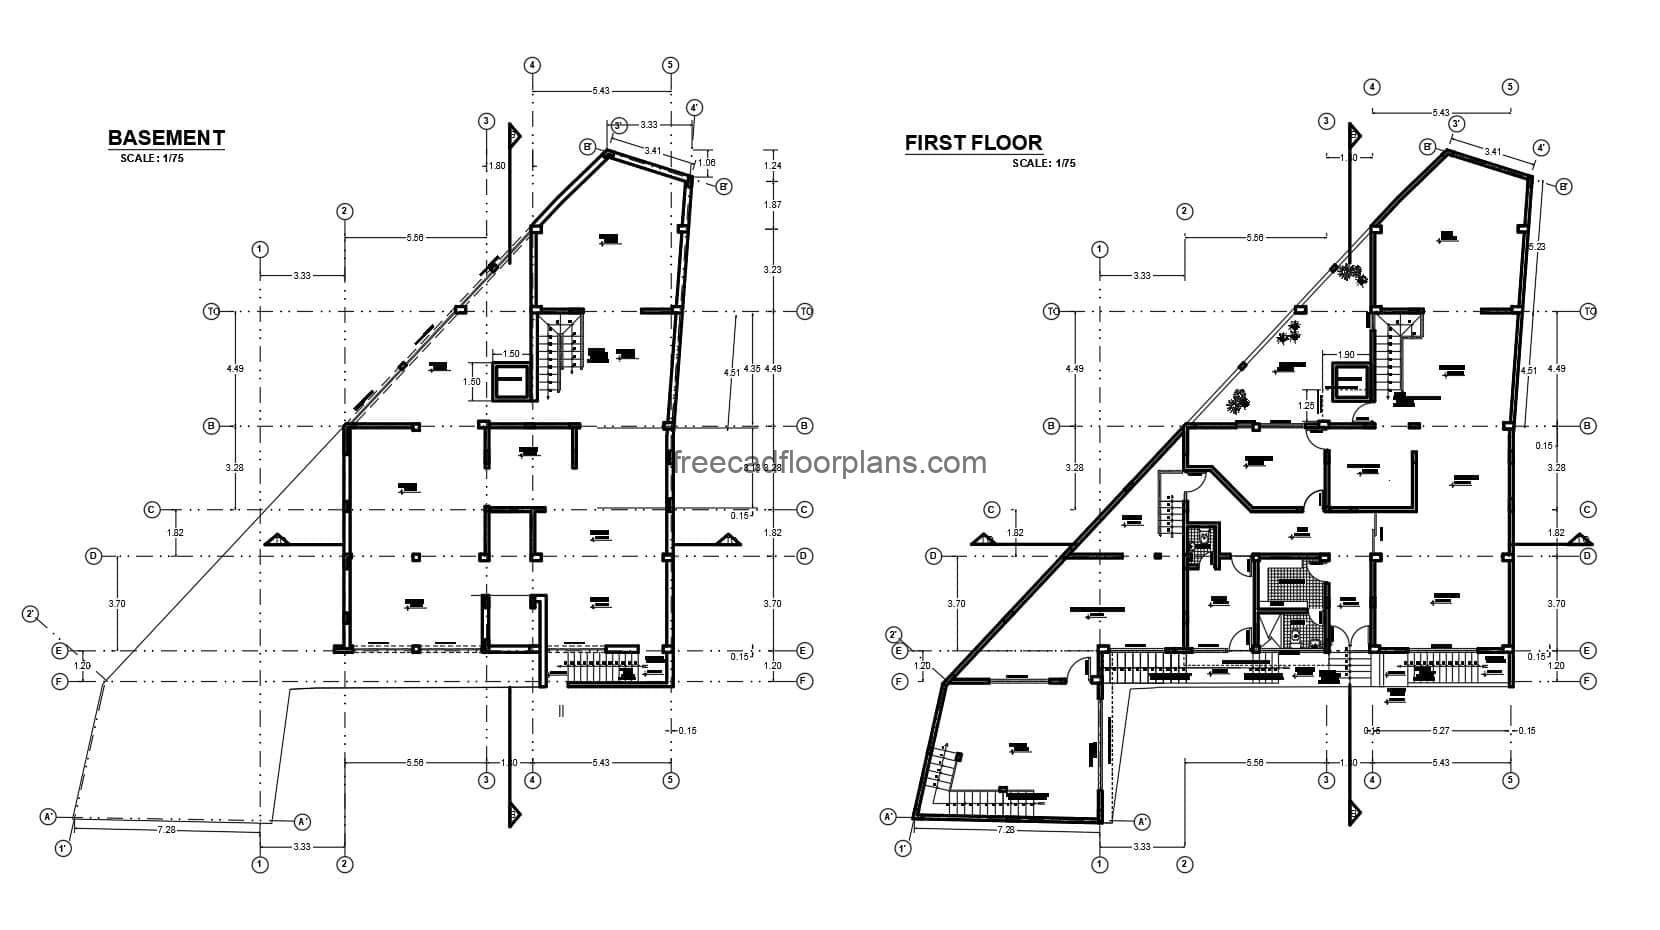 Residence with 2D plan of irregular style of three levels with basement, complete project in Autocad DWG format, architectural plans, sizing, elevations, sections, technical detail plans, sanitary, electrical, structural. Isometrics, foundation plans. Cad DWG files for free download.